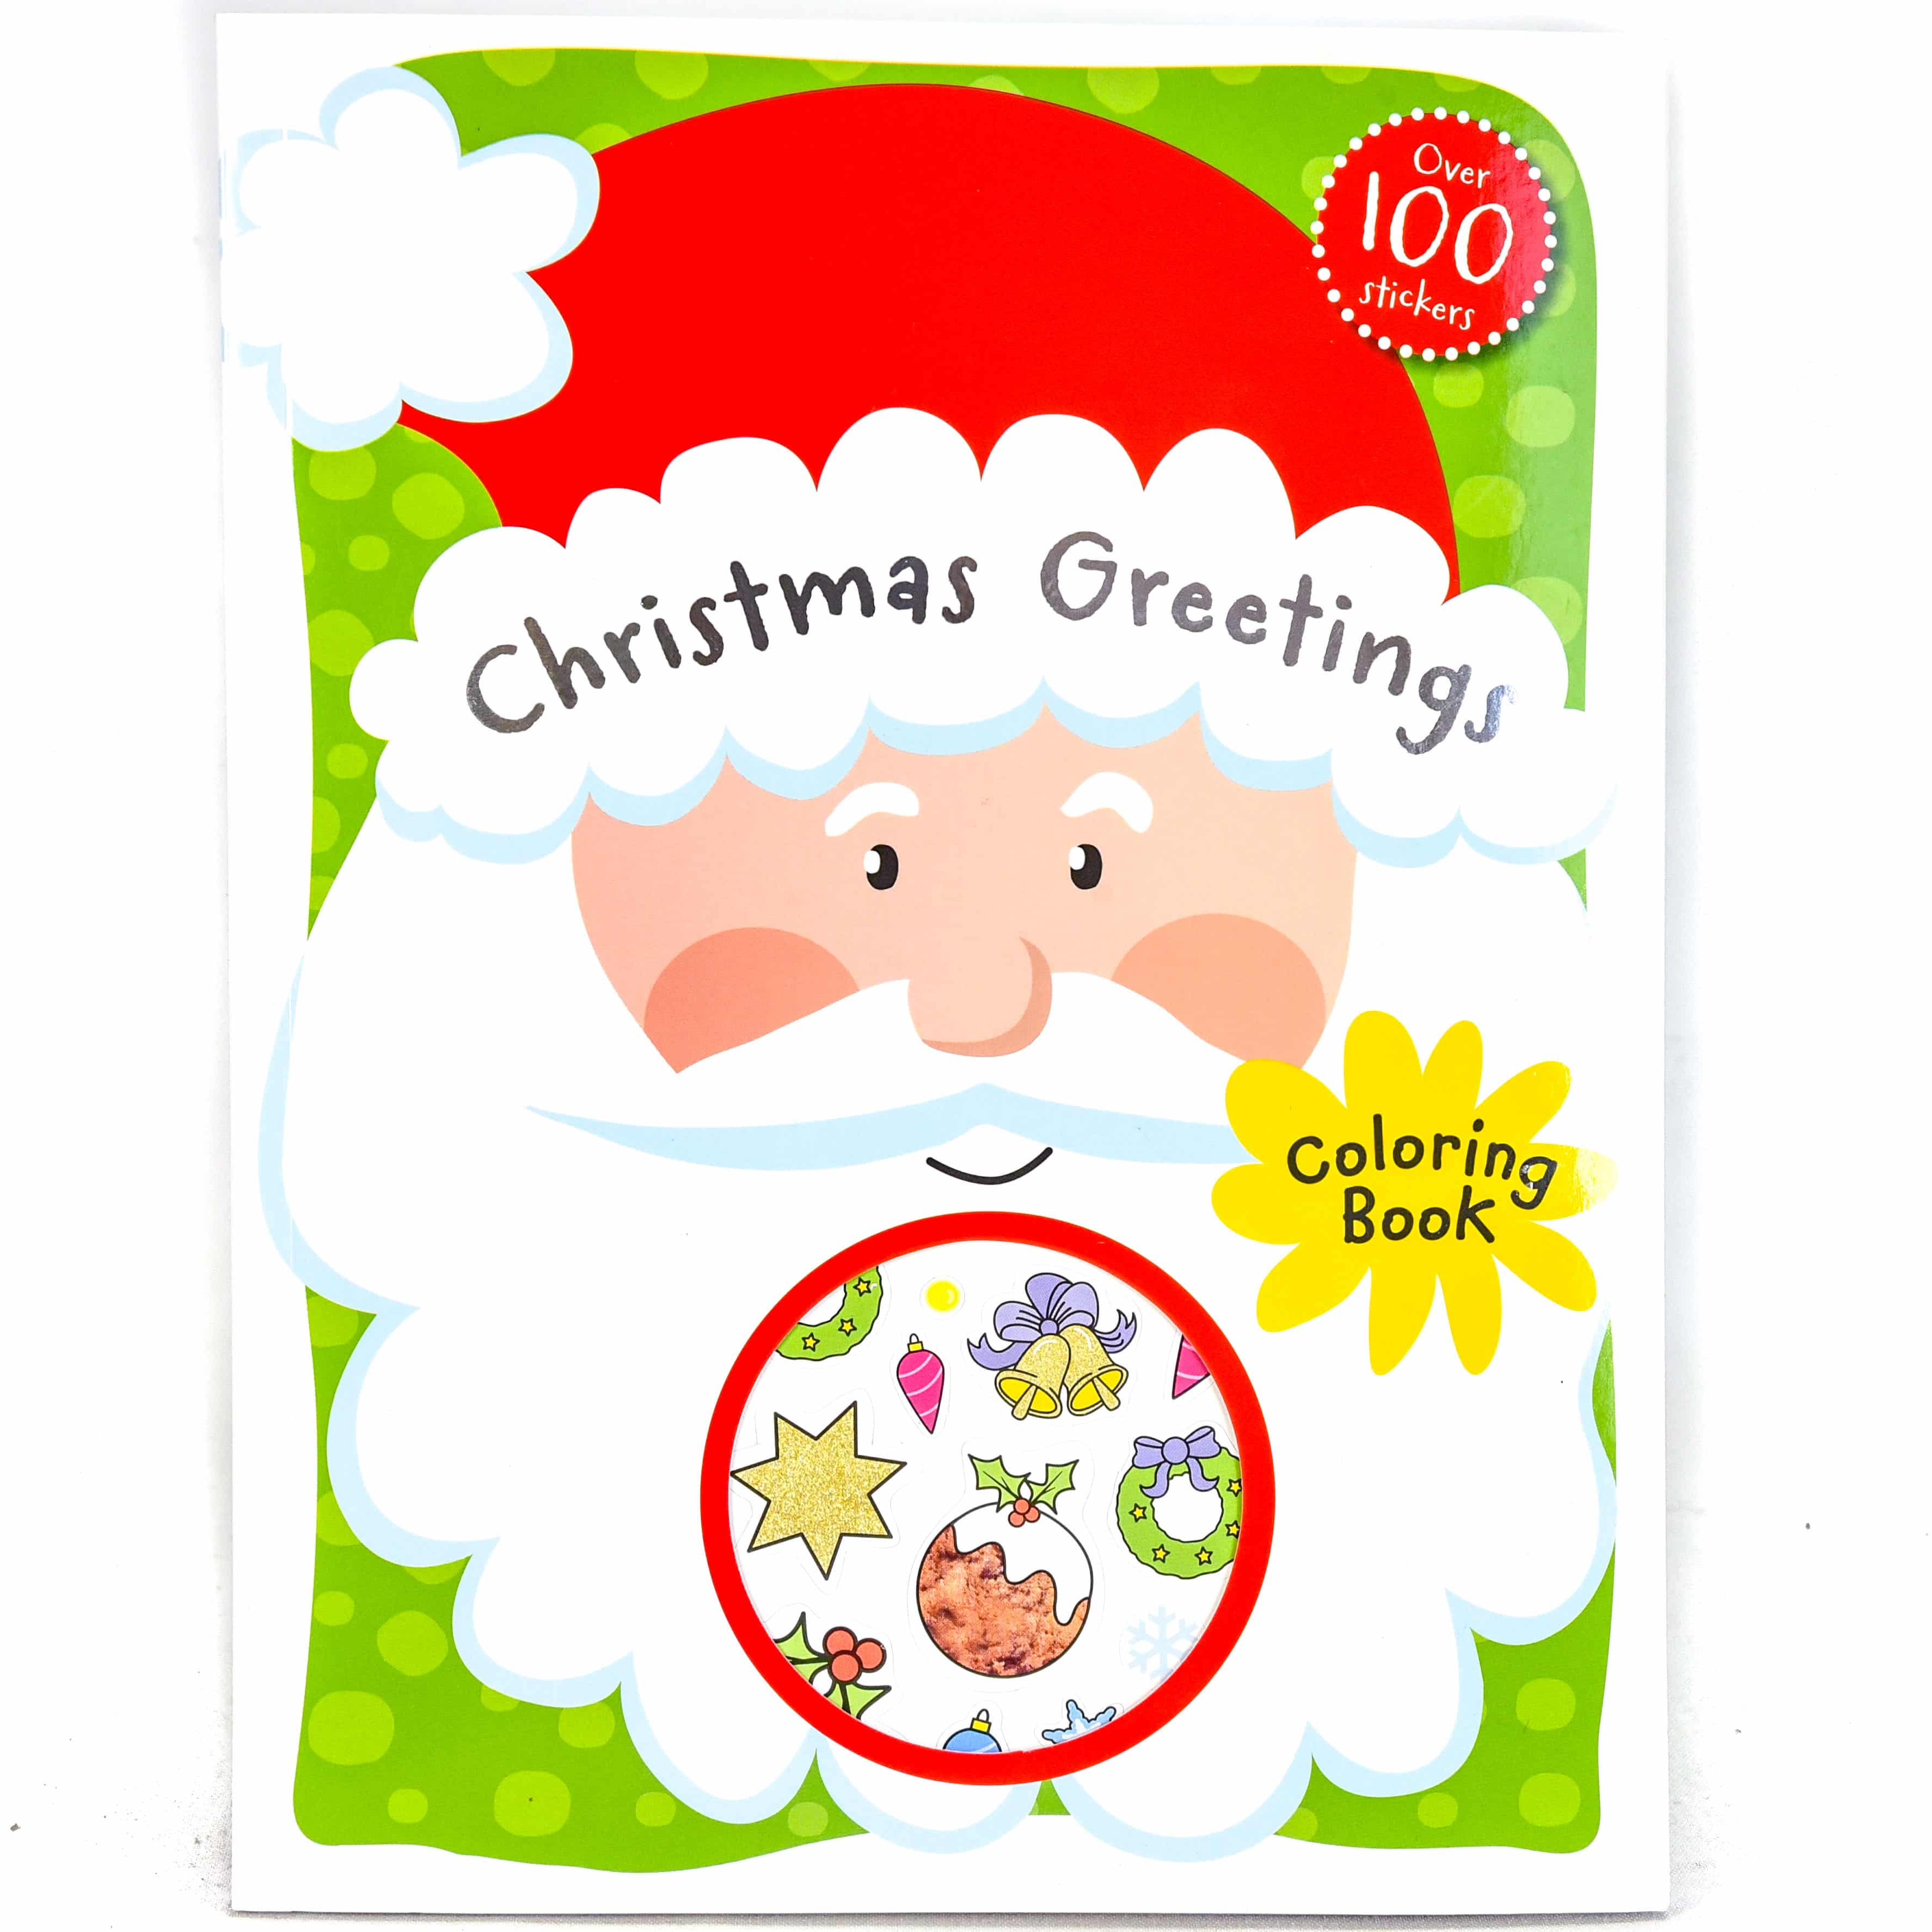 Christmas Greetings Coloring Book (with over 100 Stickers) | Samko ...